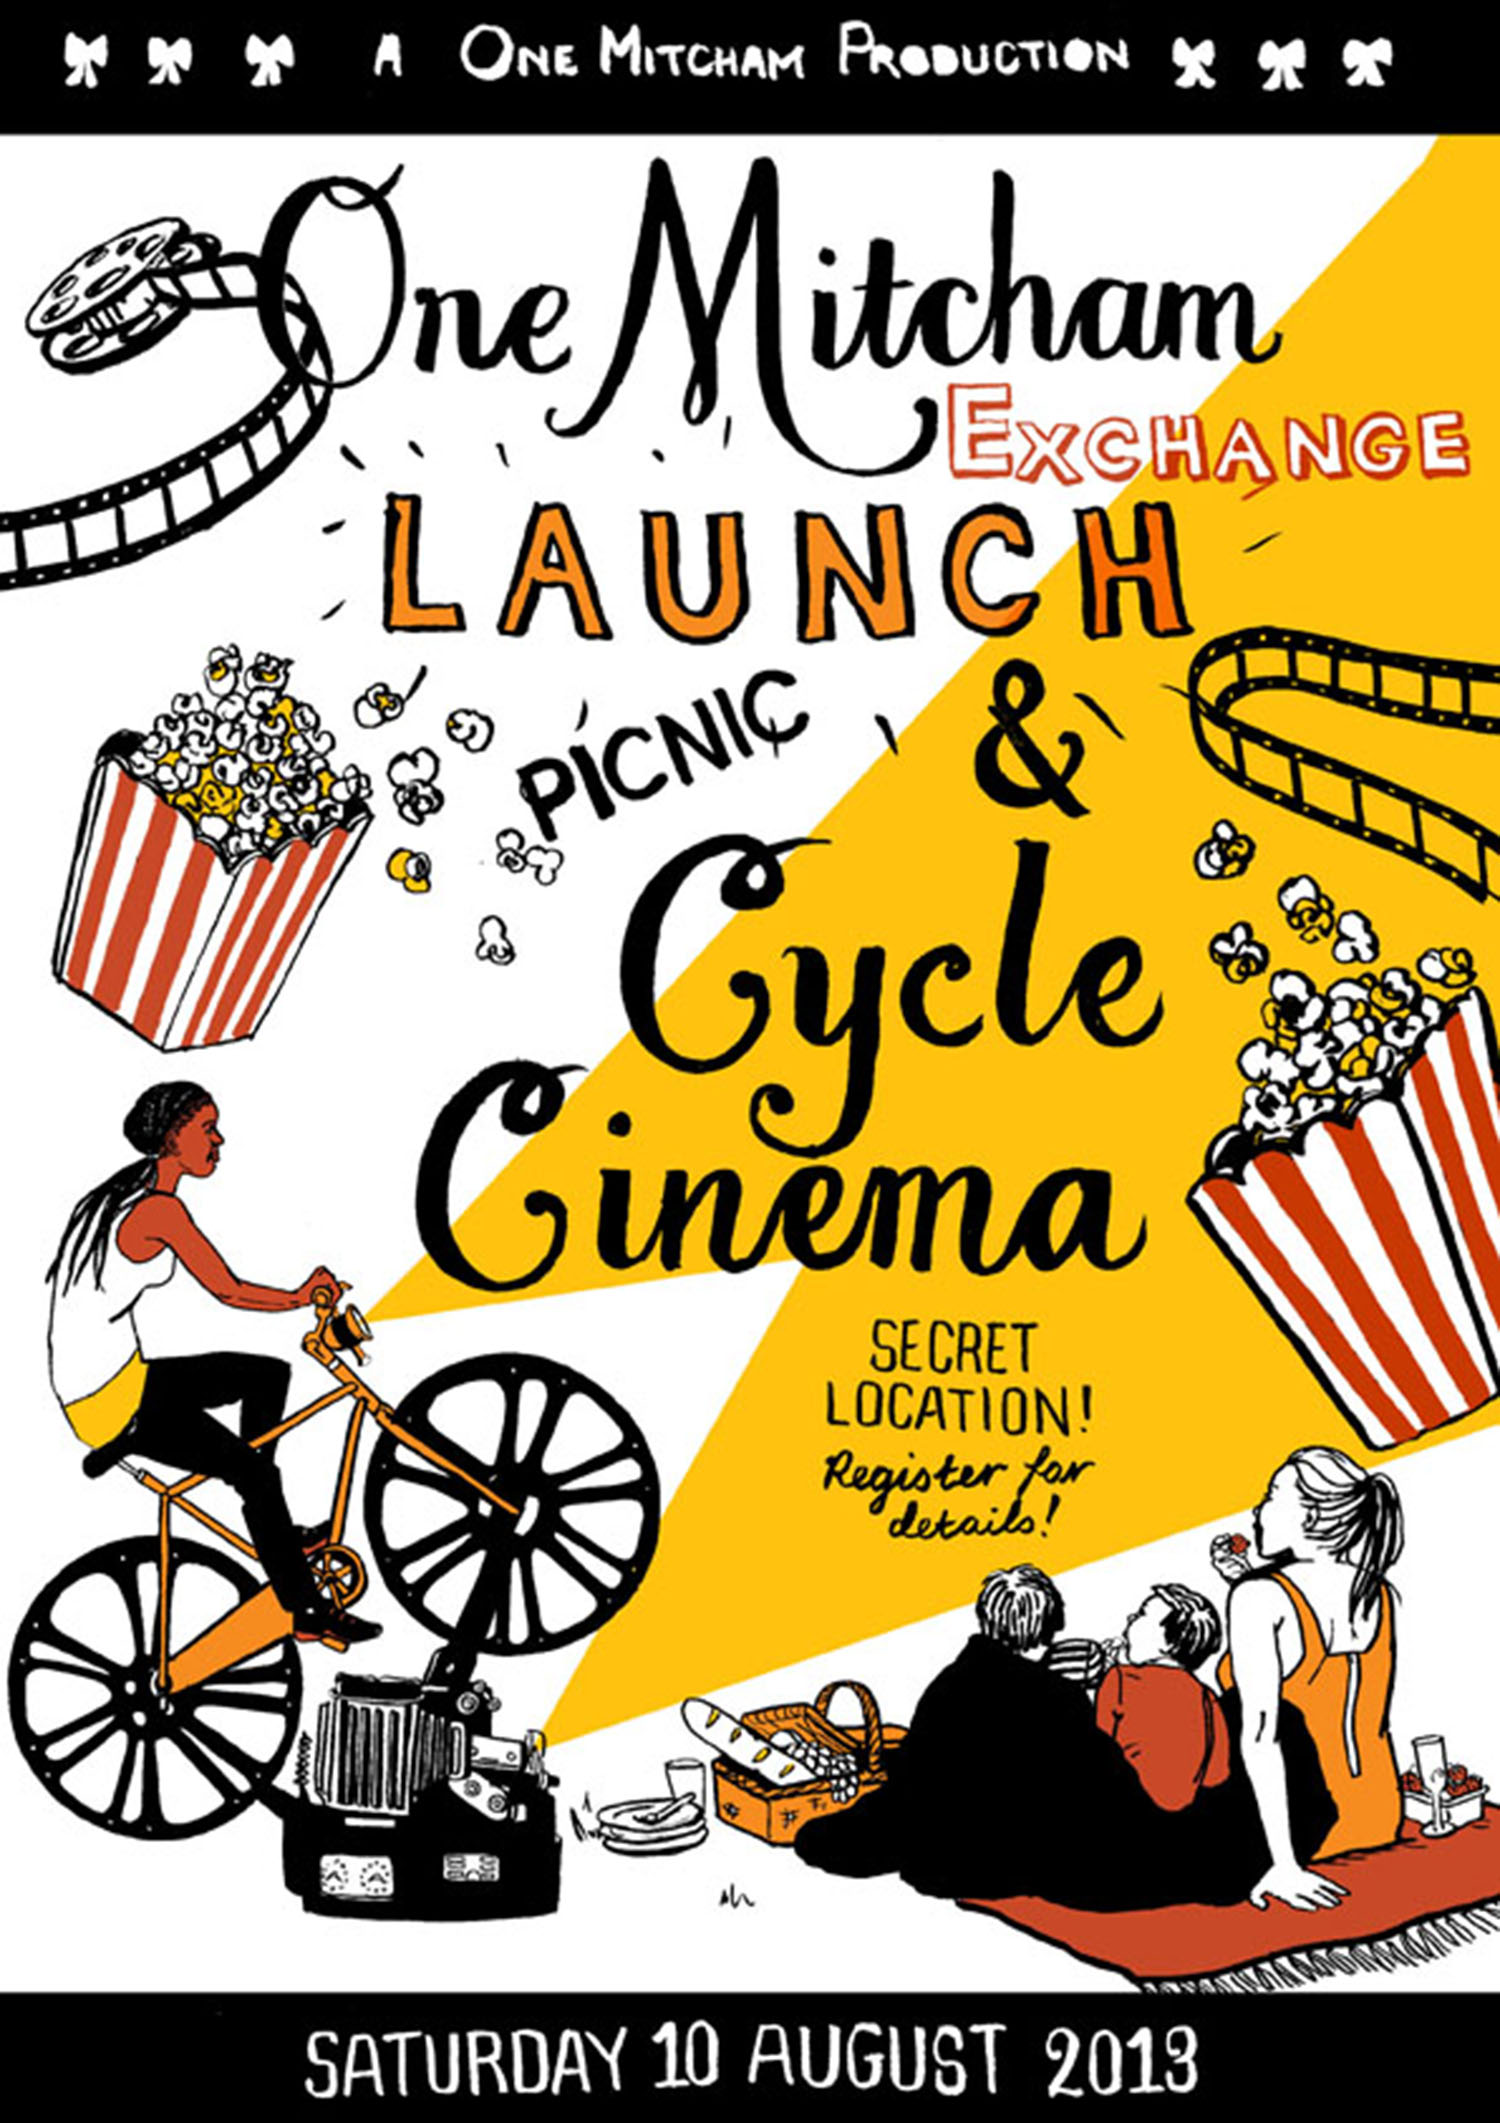 Cycle Cinema event poster